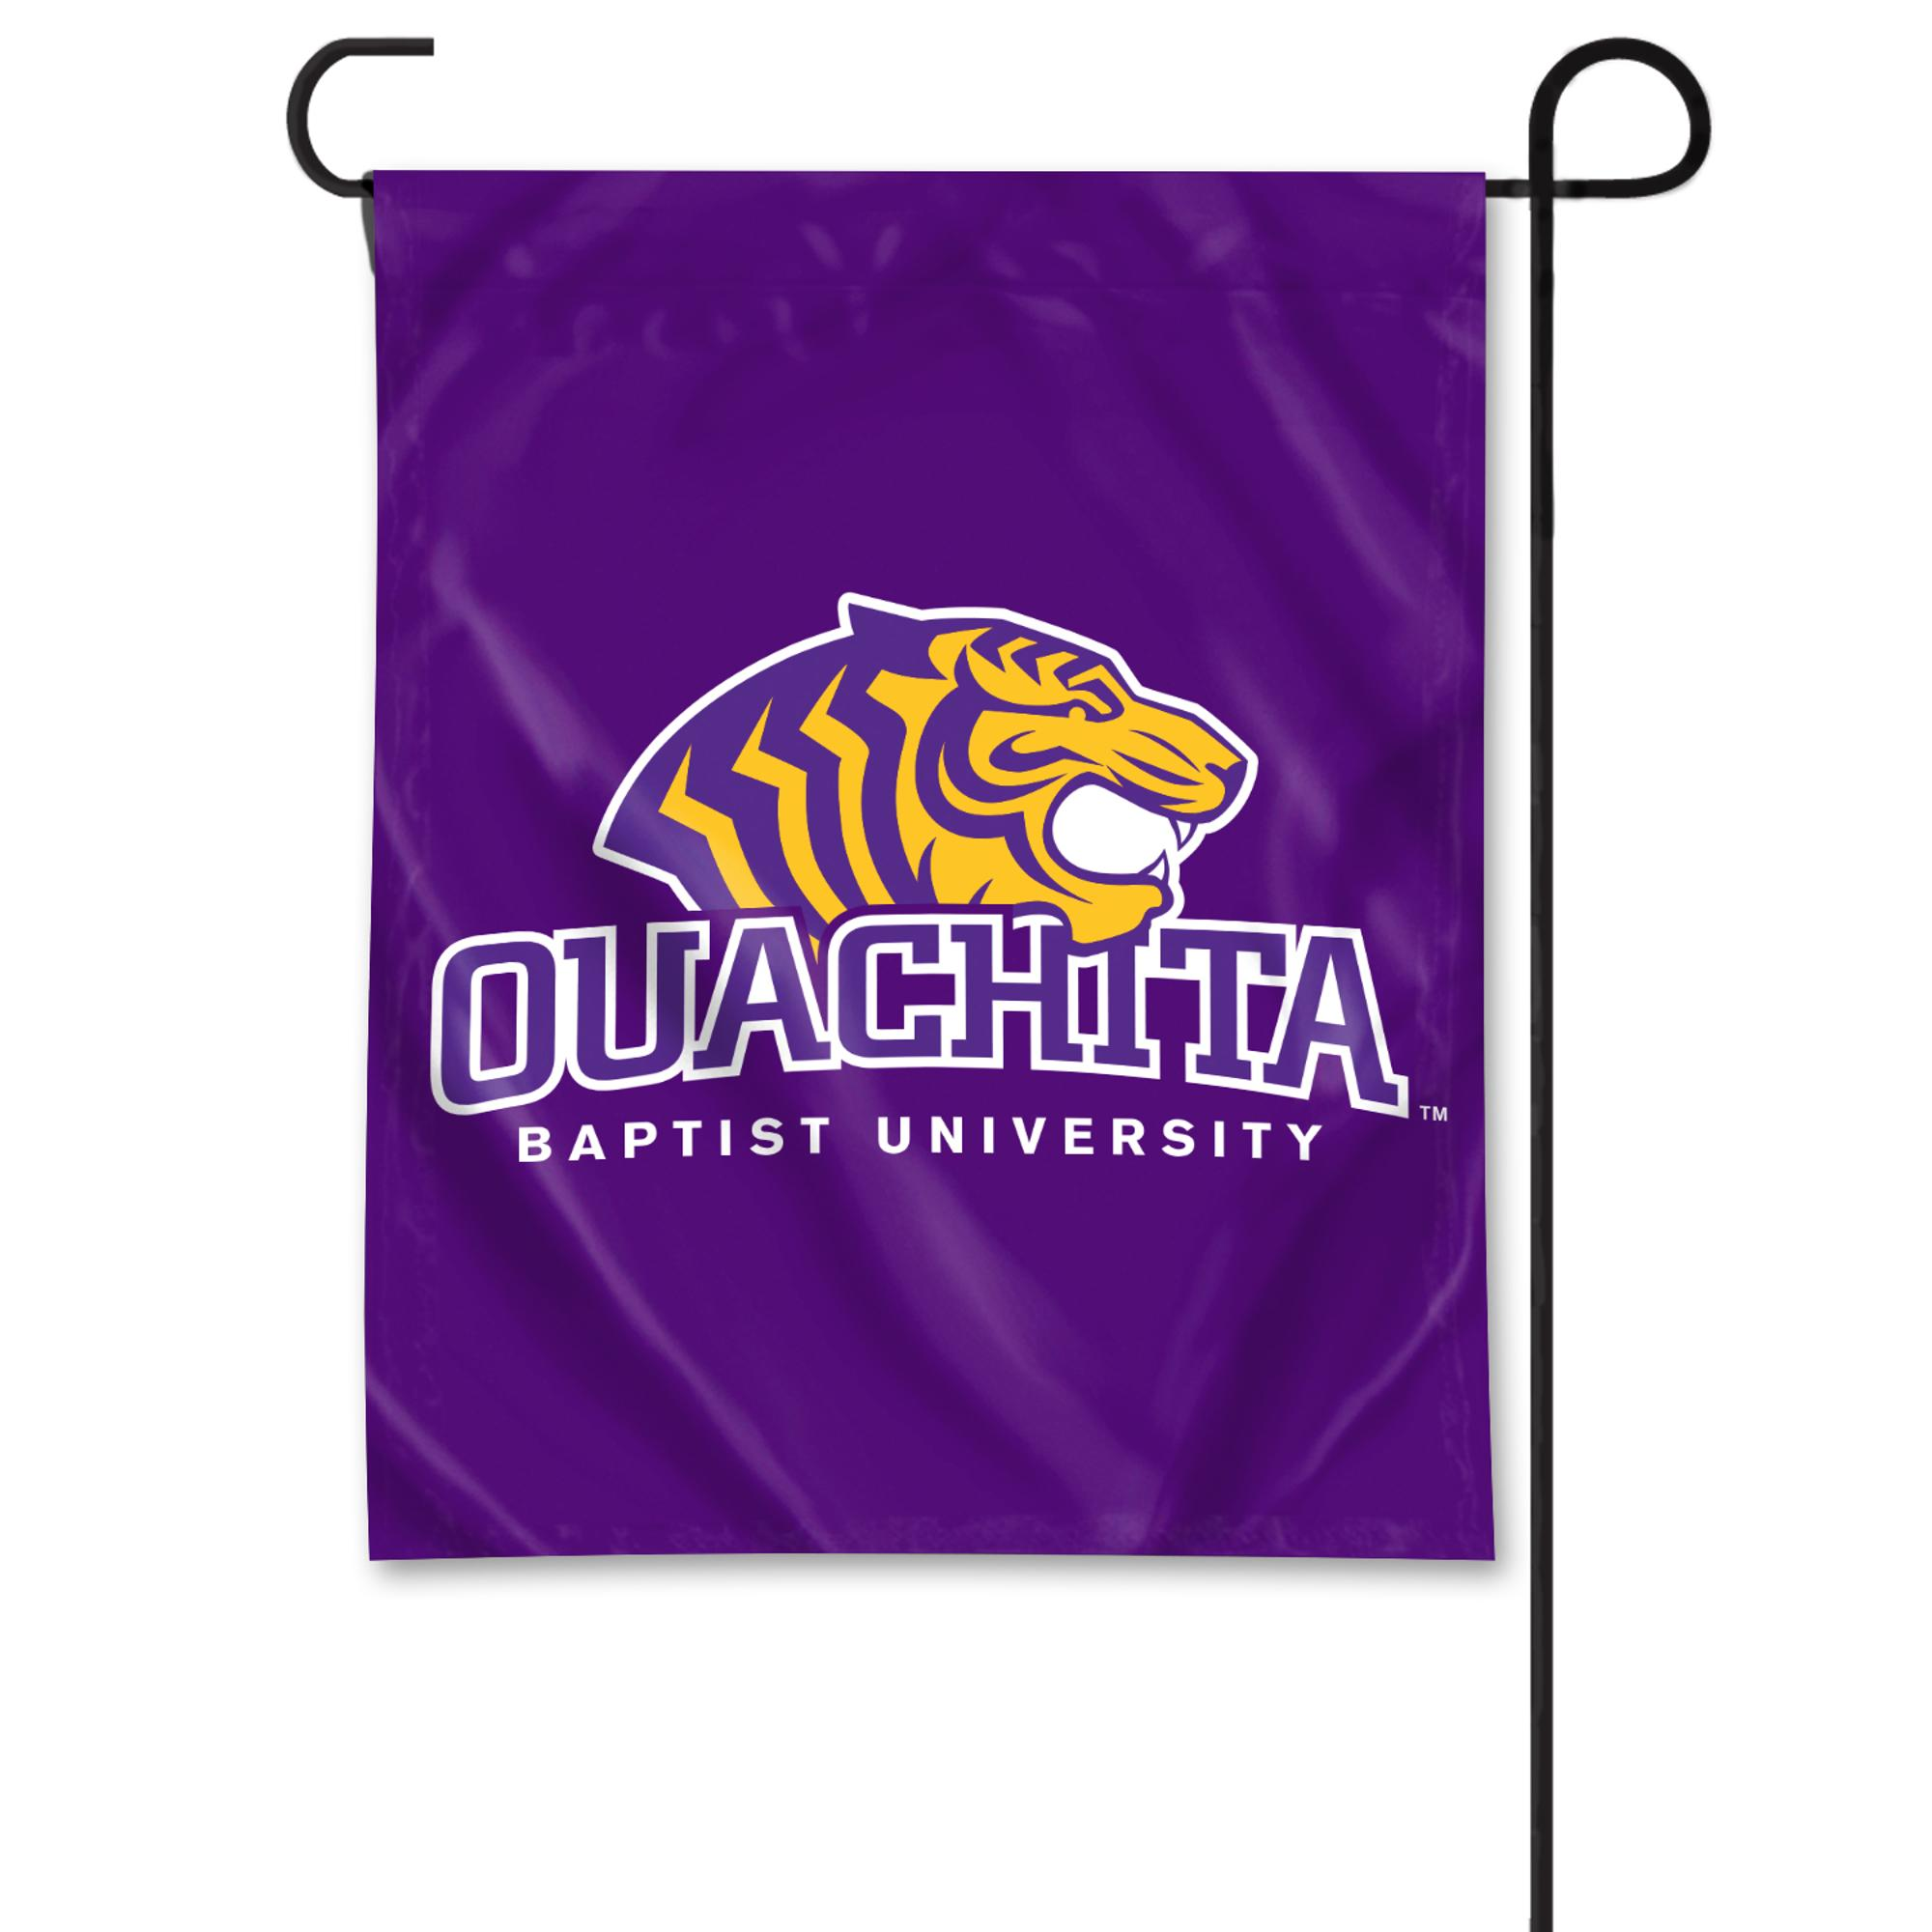 image of: OUACHITA BAPTIST UNIVERSITY GARDEN FLAG